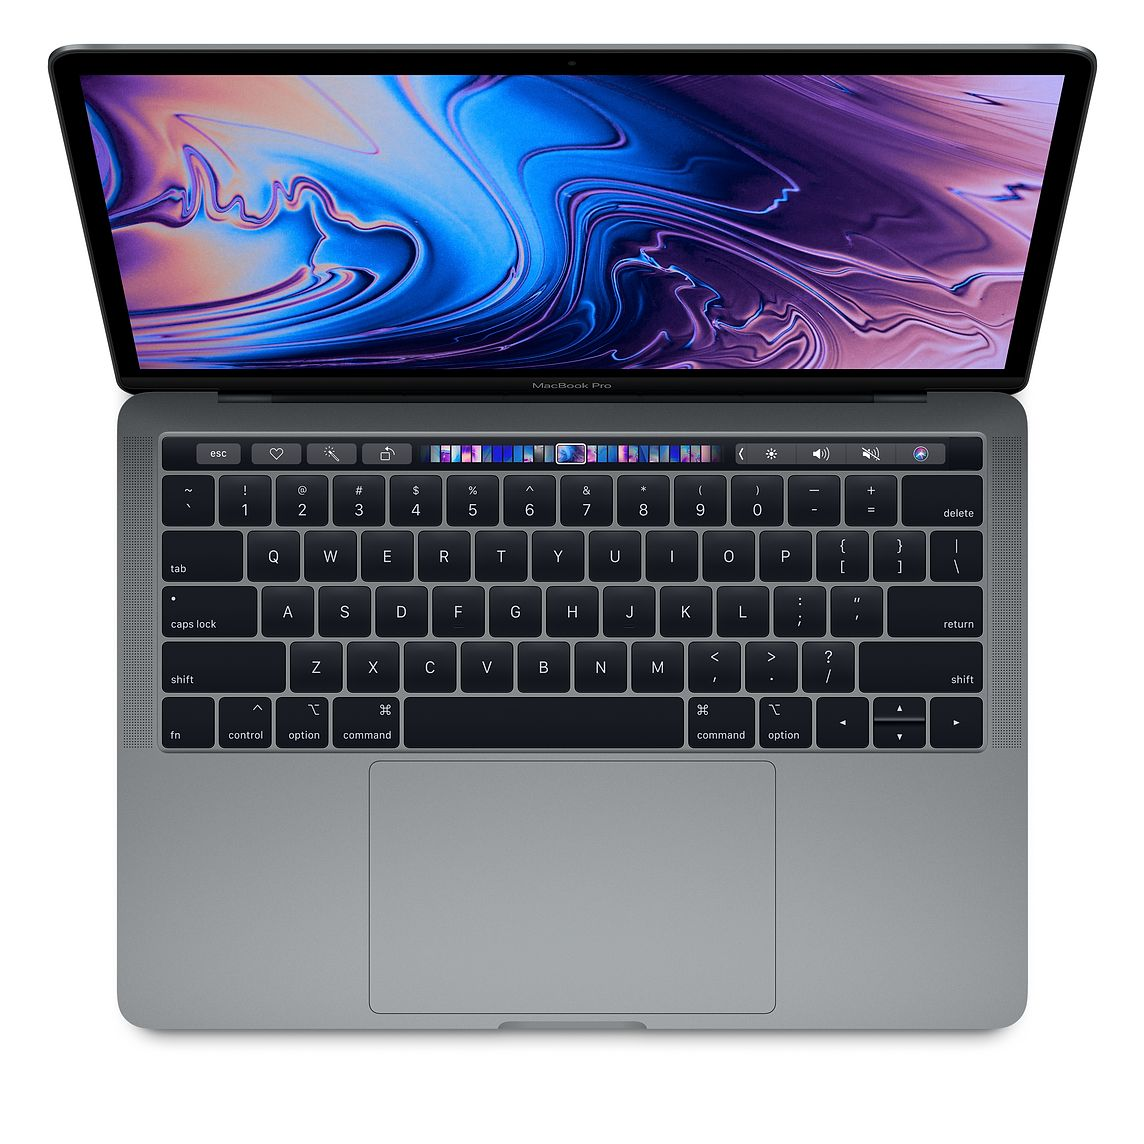 Apple resellers offer 13″ 2.4GHz MacBook Pros for $200 off MSRP, starting at $1599, free overnight delivery available